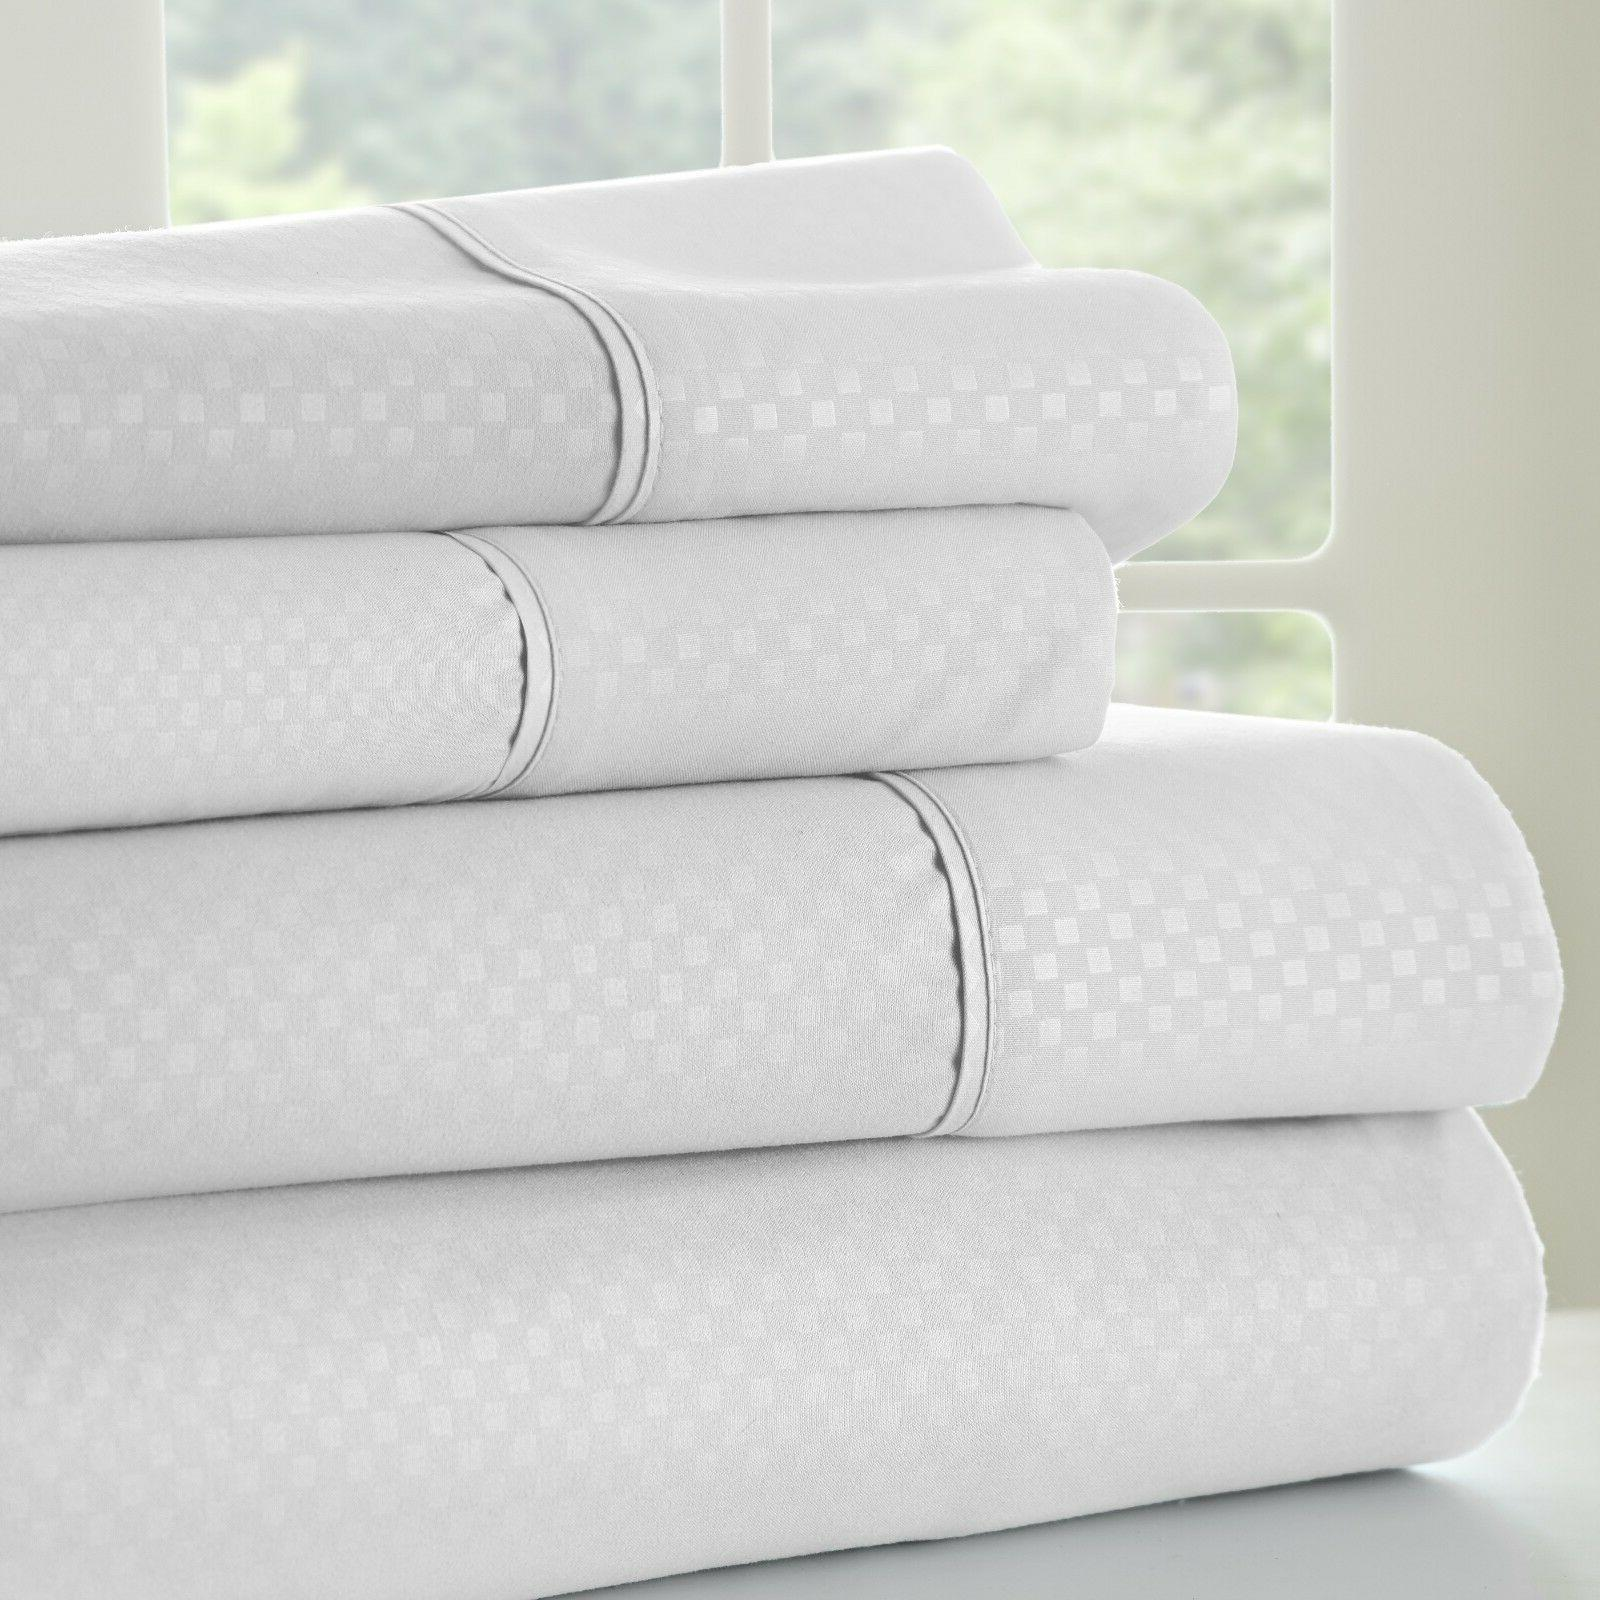 Hotel Collection - Premium Ultra Soft Checkered Bed Sheet Se